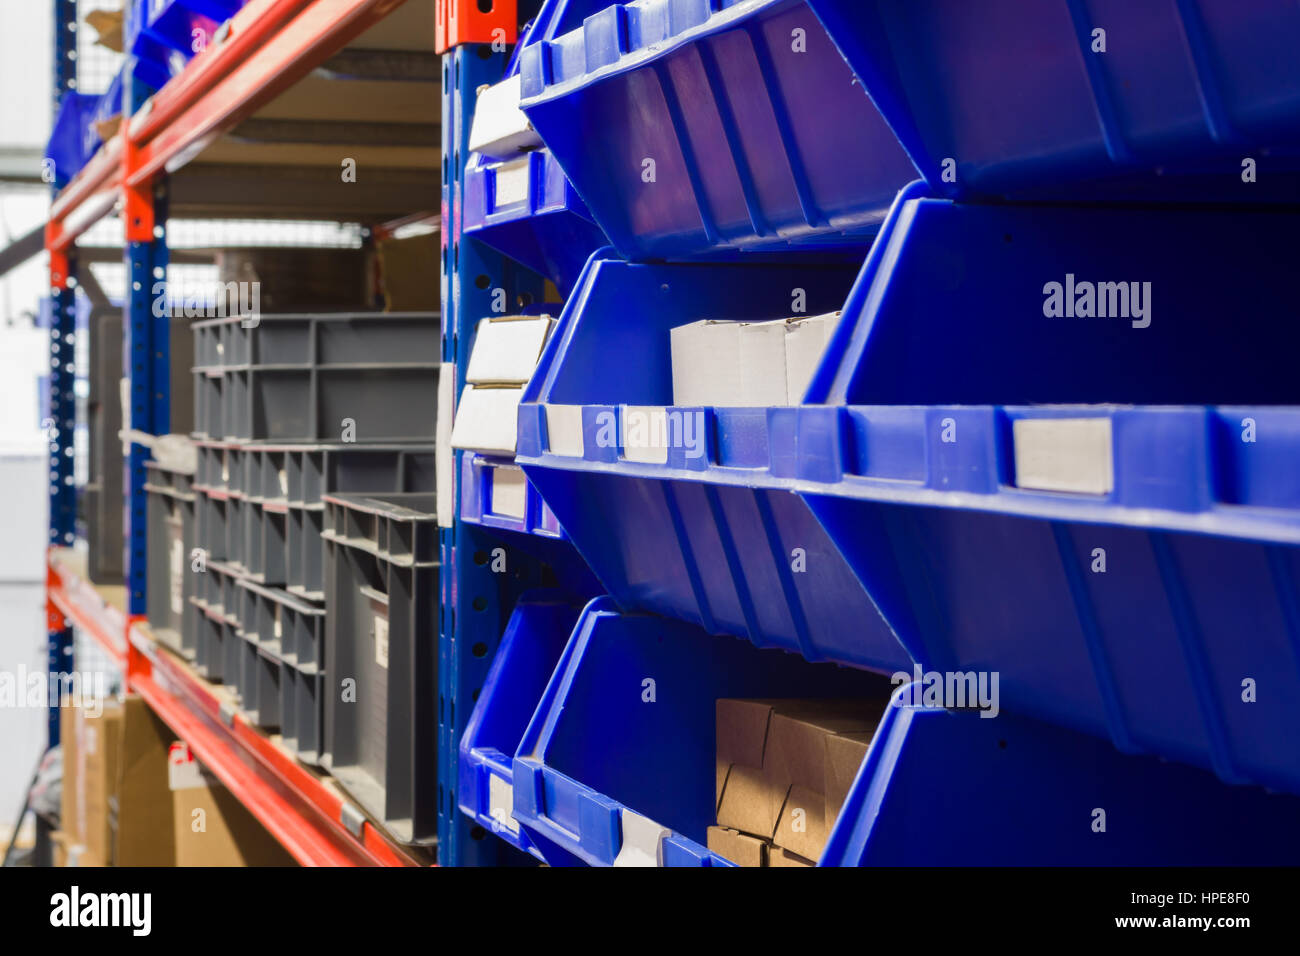 Storage Racks Storage Bins And Industrial Storage Racks In A Warehouse Shot With